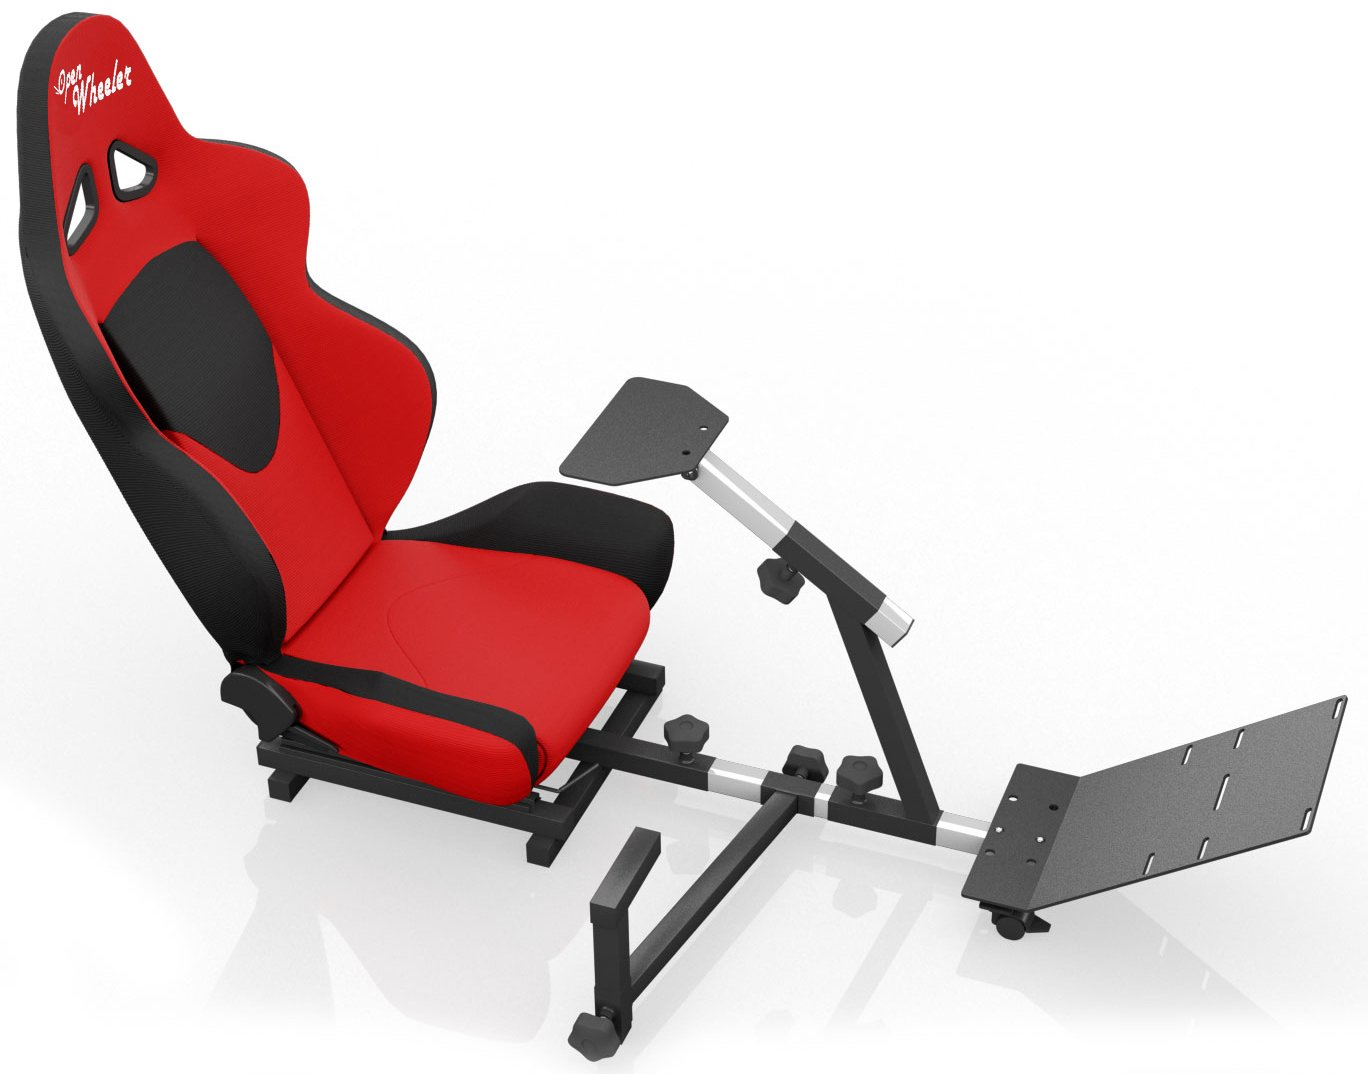 Openwheeler Advanced Racing Simulator Seat Driving Simulator Gaming Chair with Gear Shift Mount by OpenWheeler